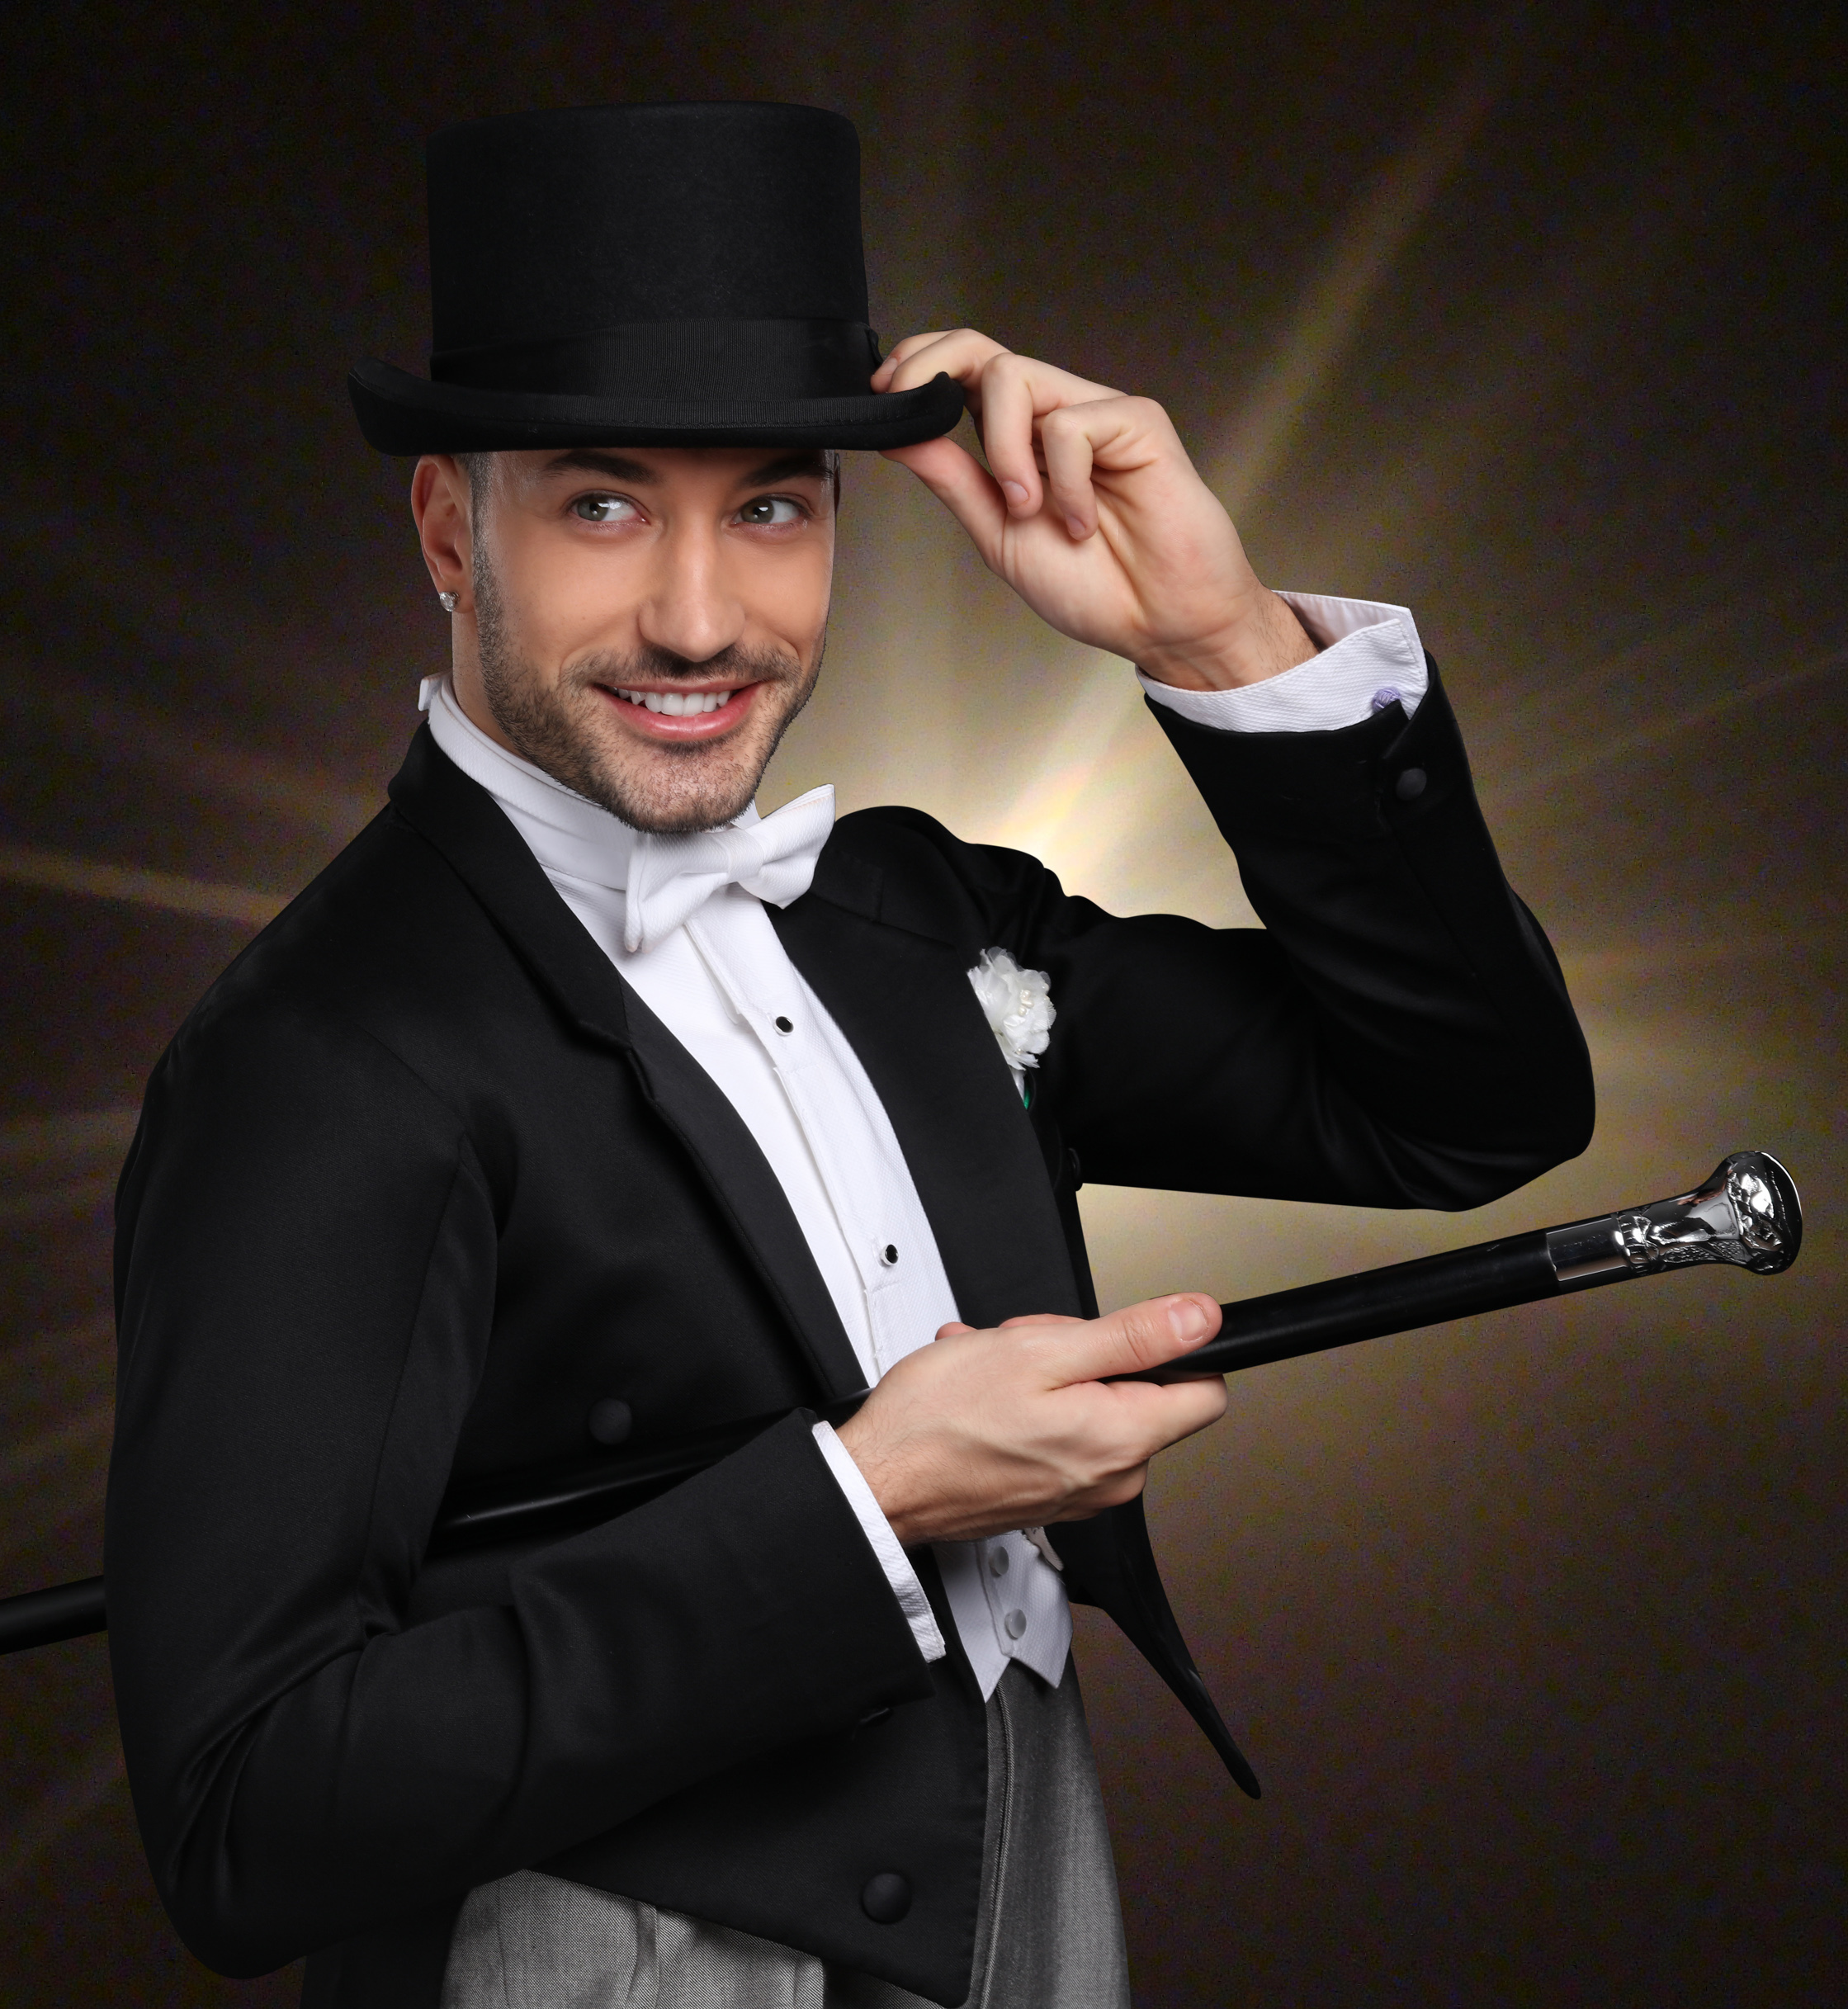 Strictly's Italian star is heading to Dorset on solo tour